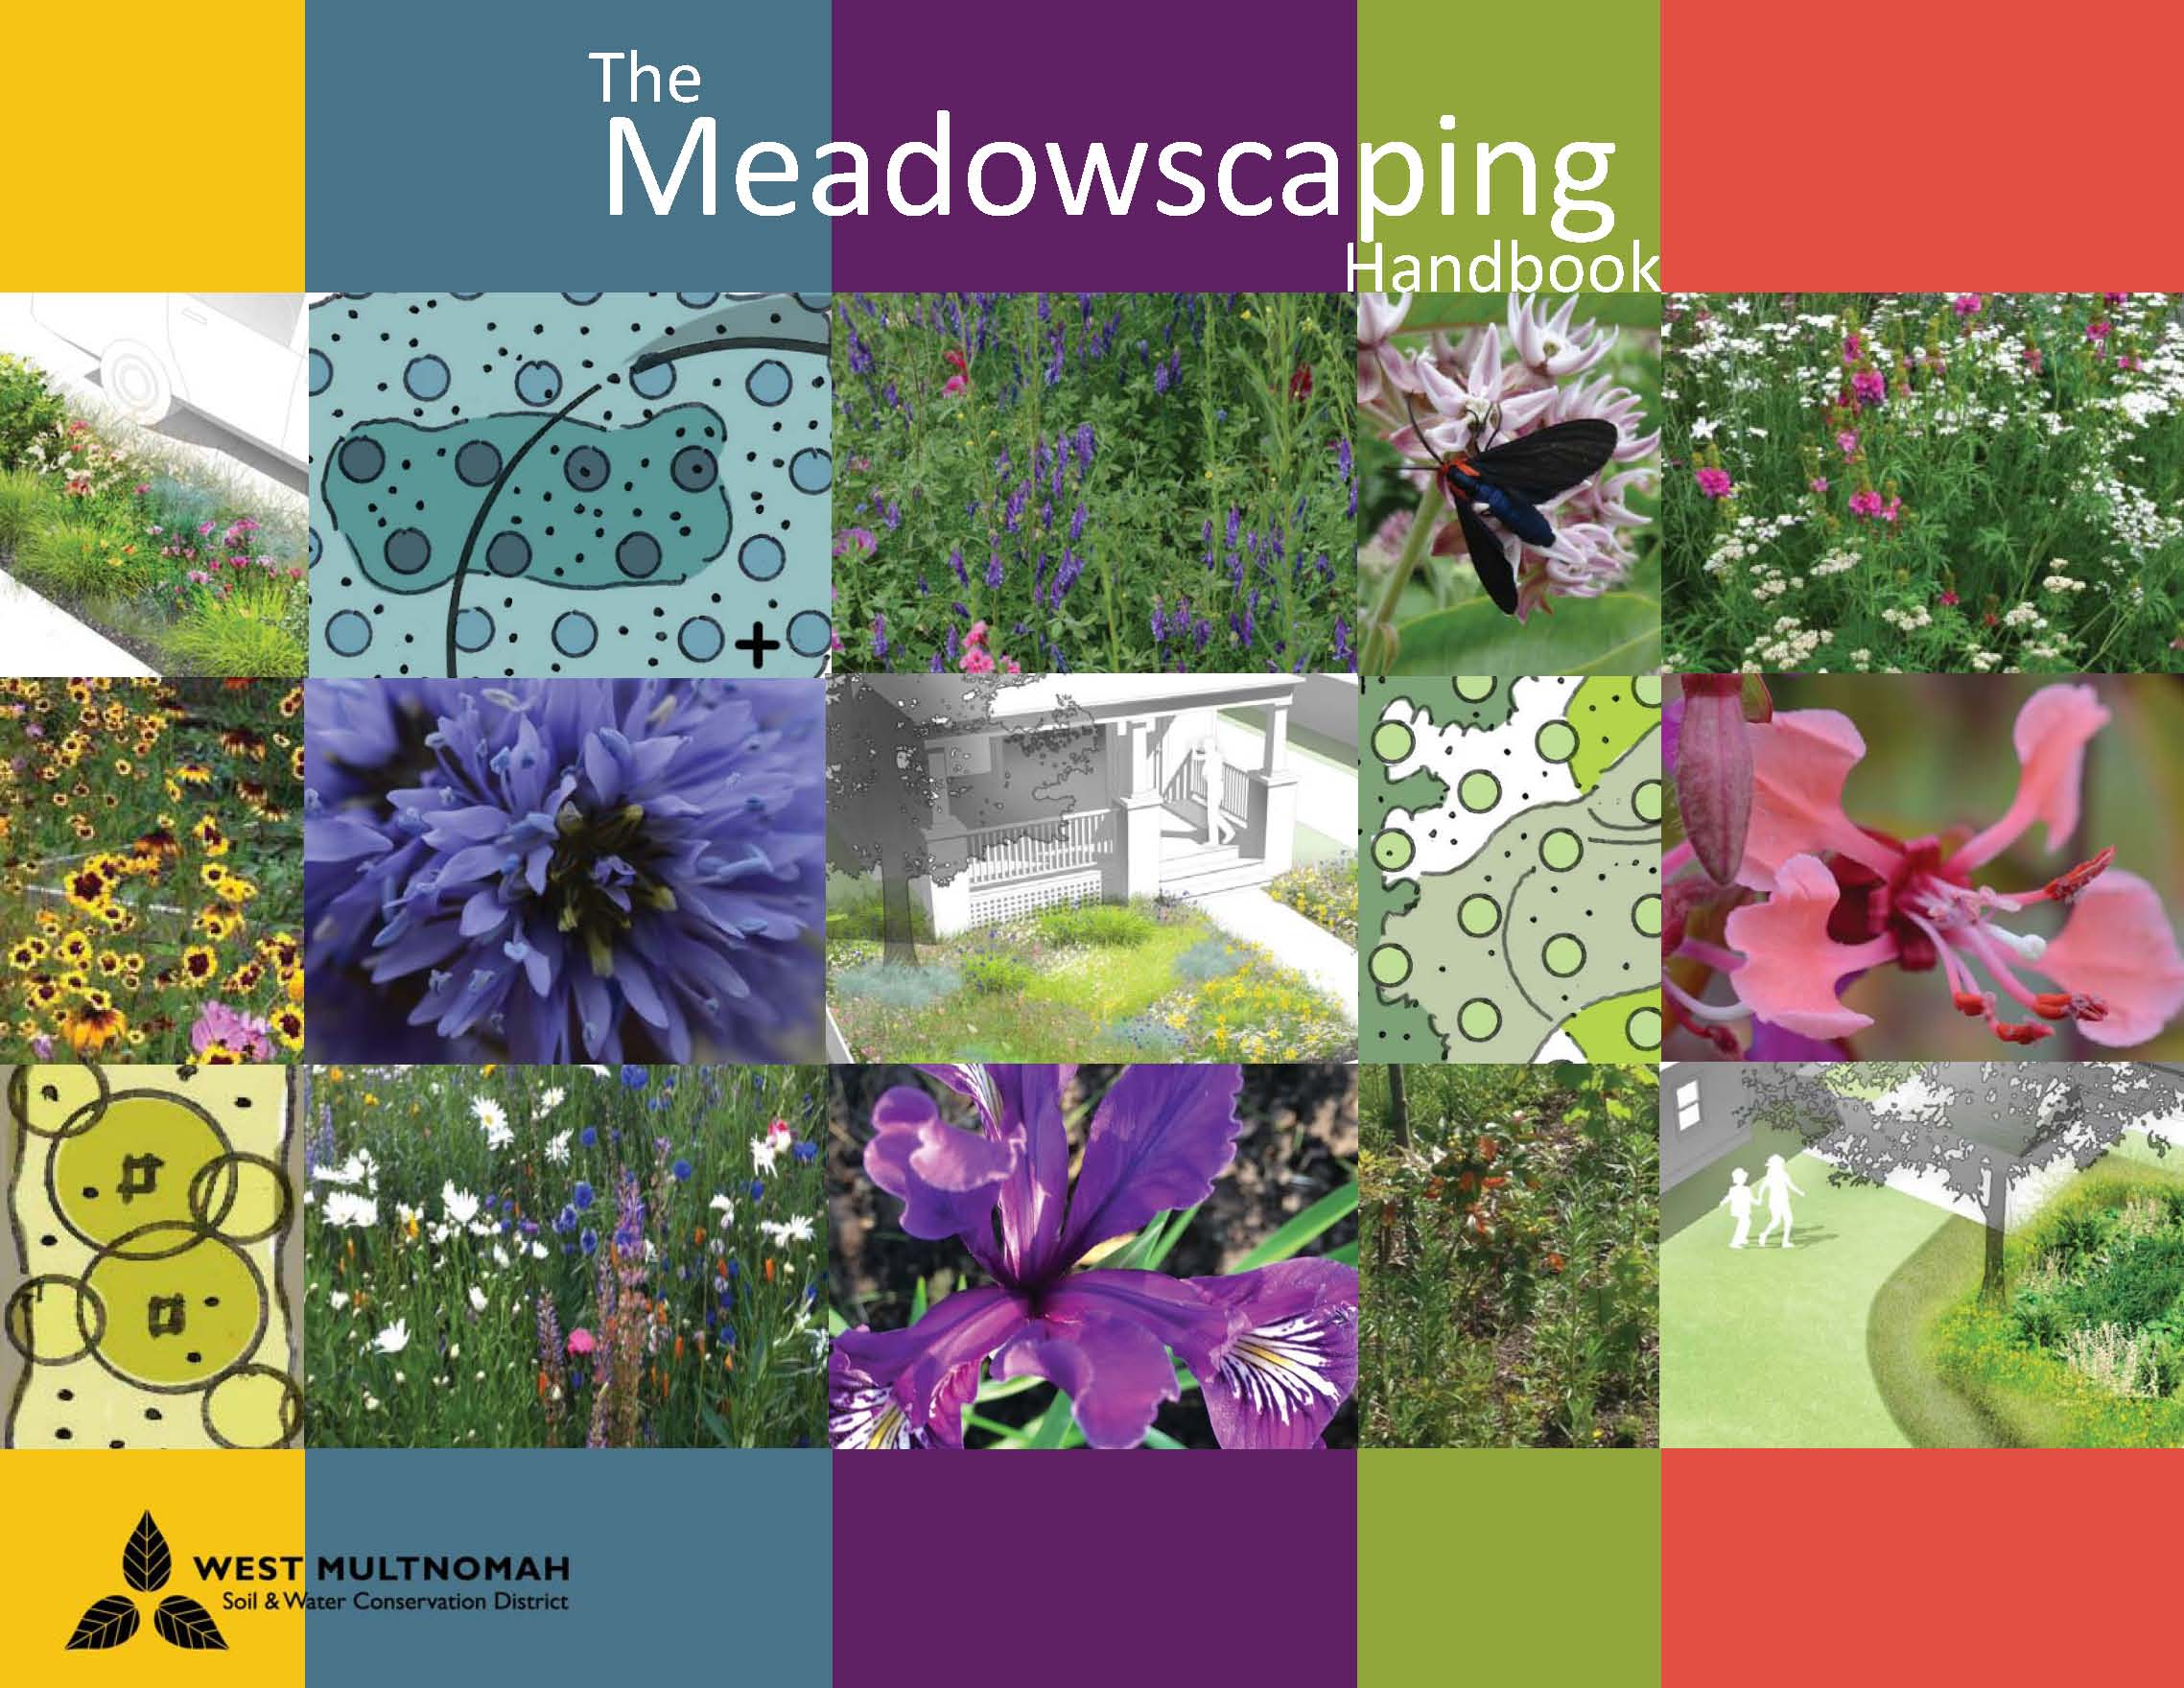 Pages from Meadowscaping_Publication_Complete_04_04_16_FINAL